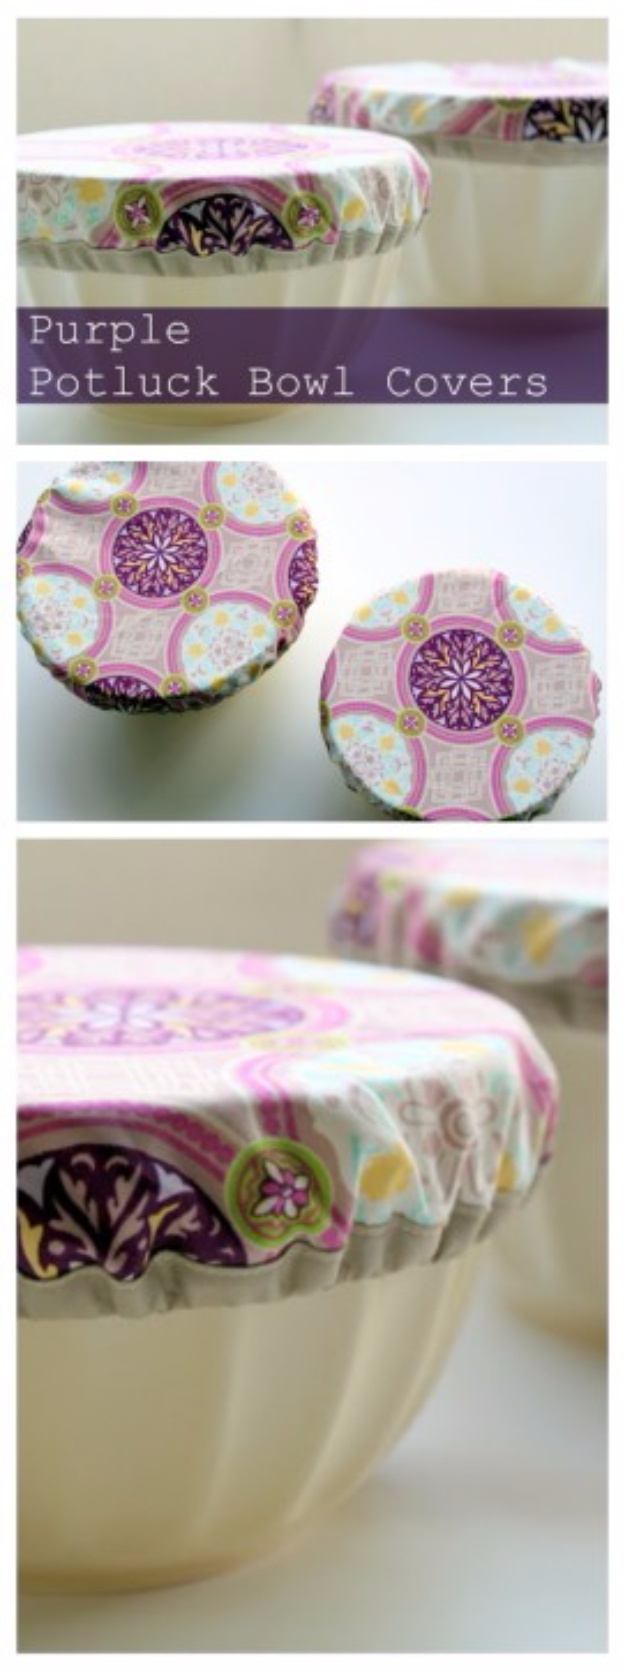 Sewing Crafts To Make and Sell - Purple Potluck Bowl Covers - Easy DIY Sewing Ideas To Make and Sell for Your Craft Business. Make Money with these Simple Gift Ideas, Free Patterns, Products from Fabric Scraps, Cute Kids Tutorials #sewing #crafts